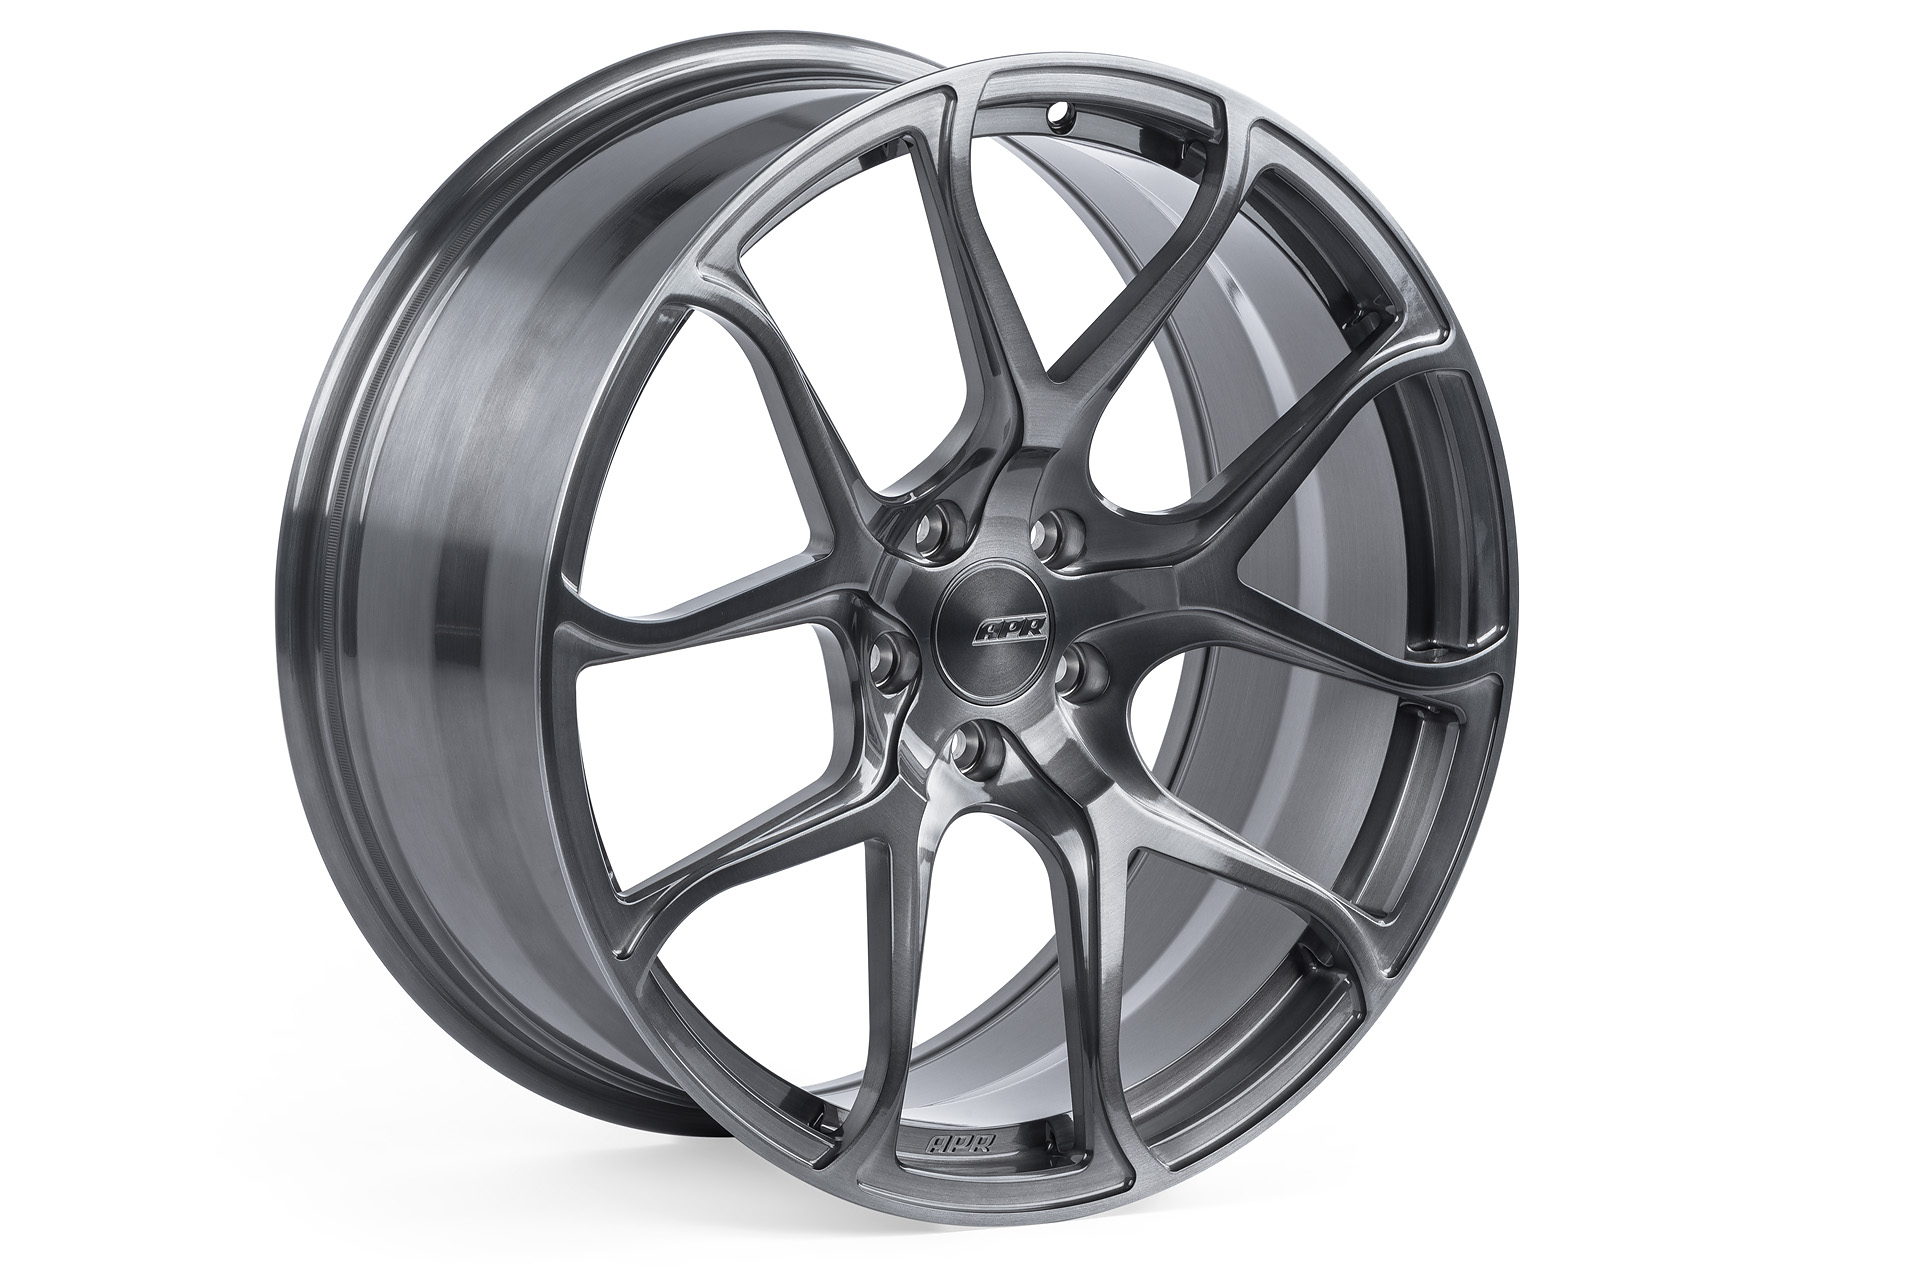 APR S01 Forged Aluminum Wheel - ET42, 20X9 (Brushed Gunmetal)